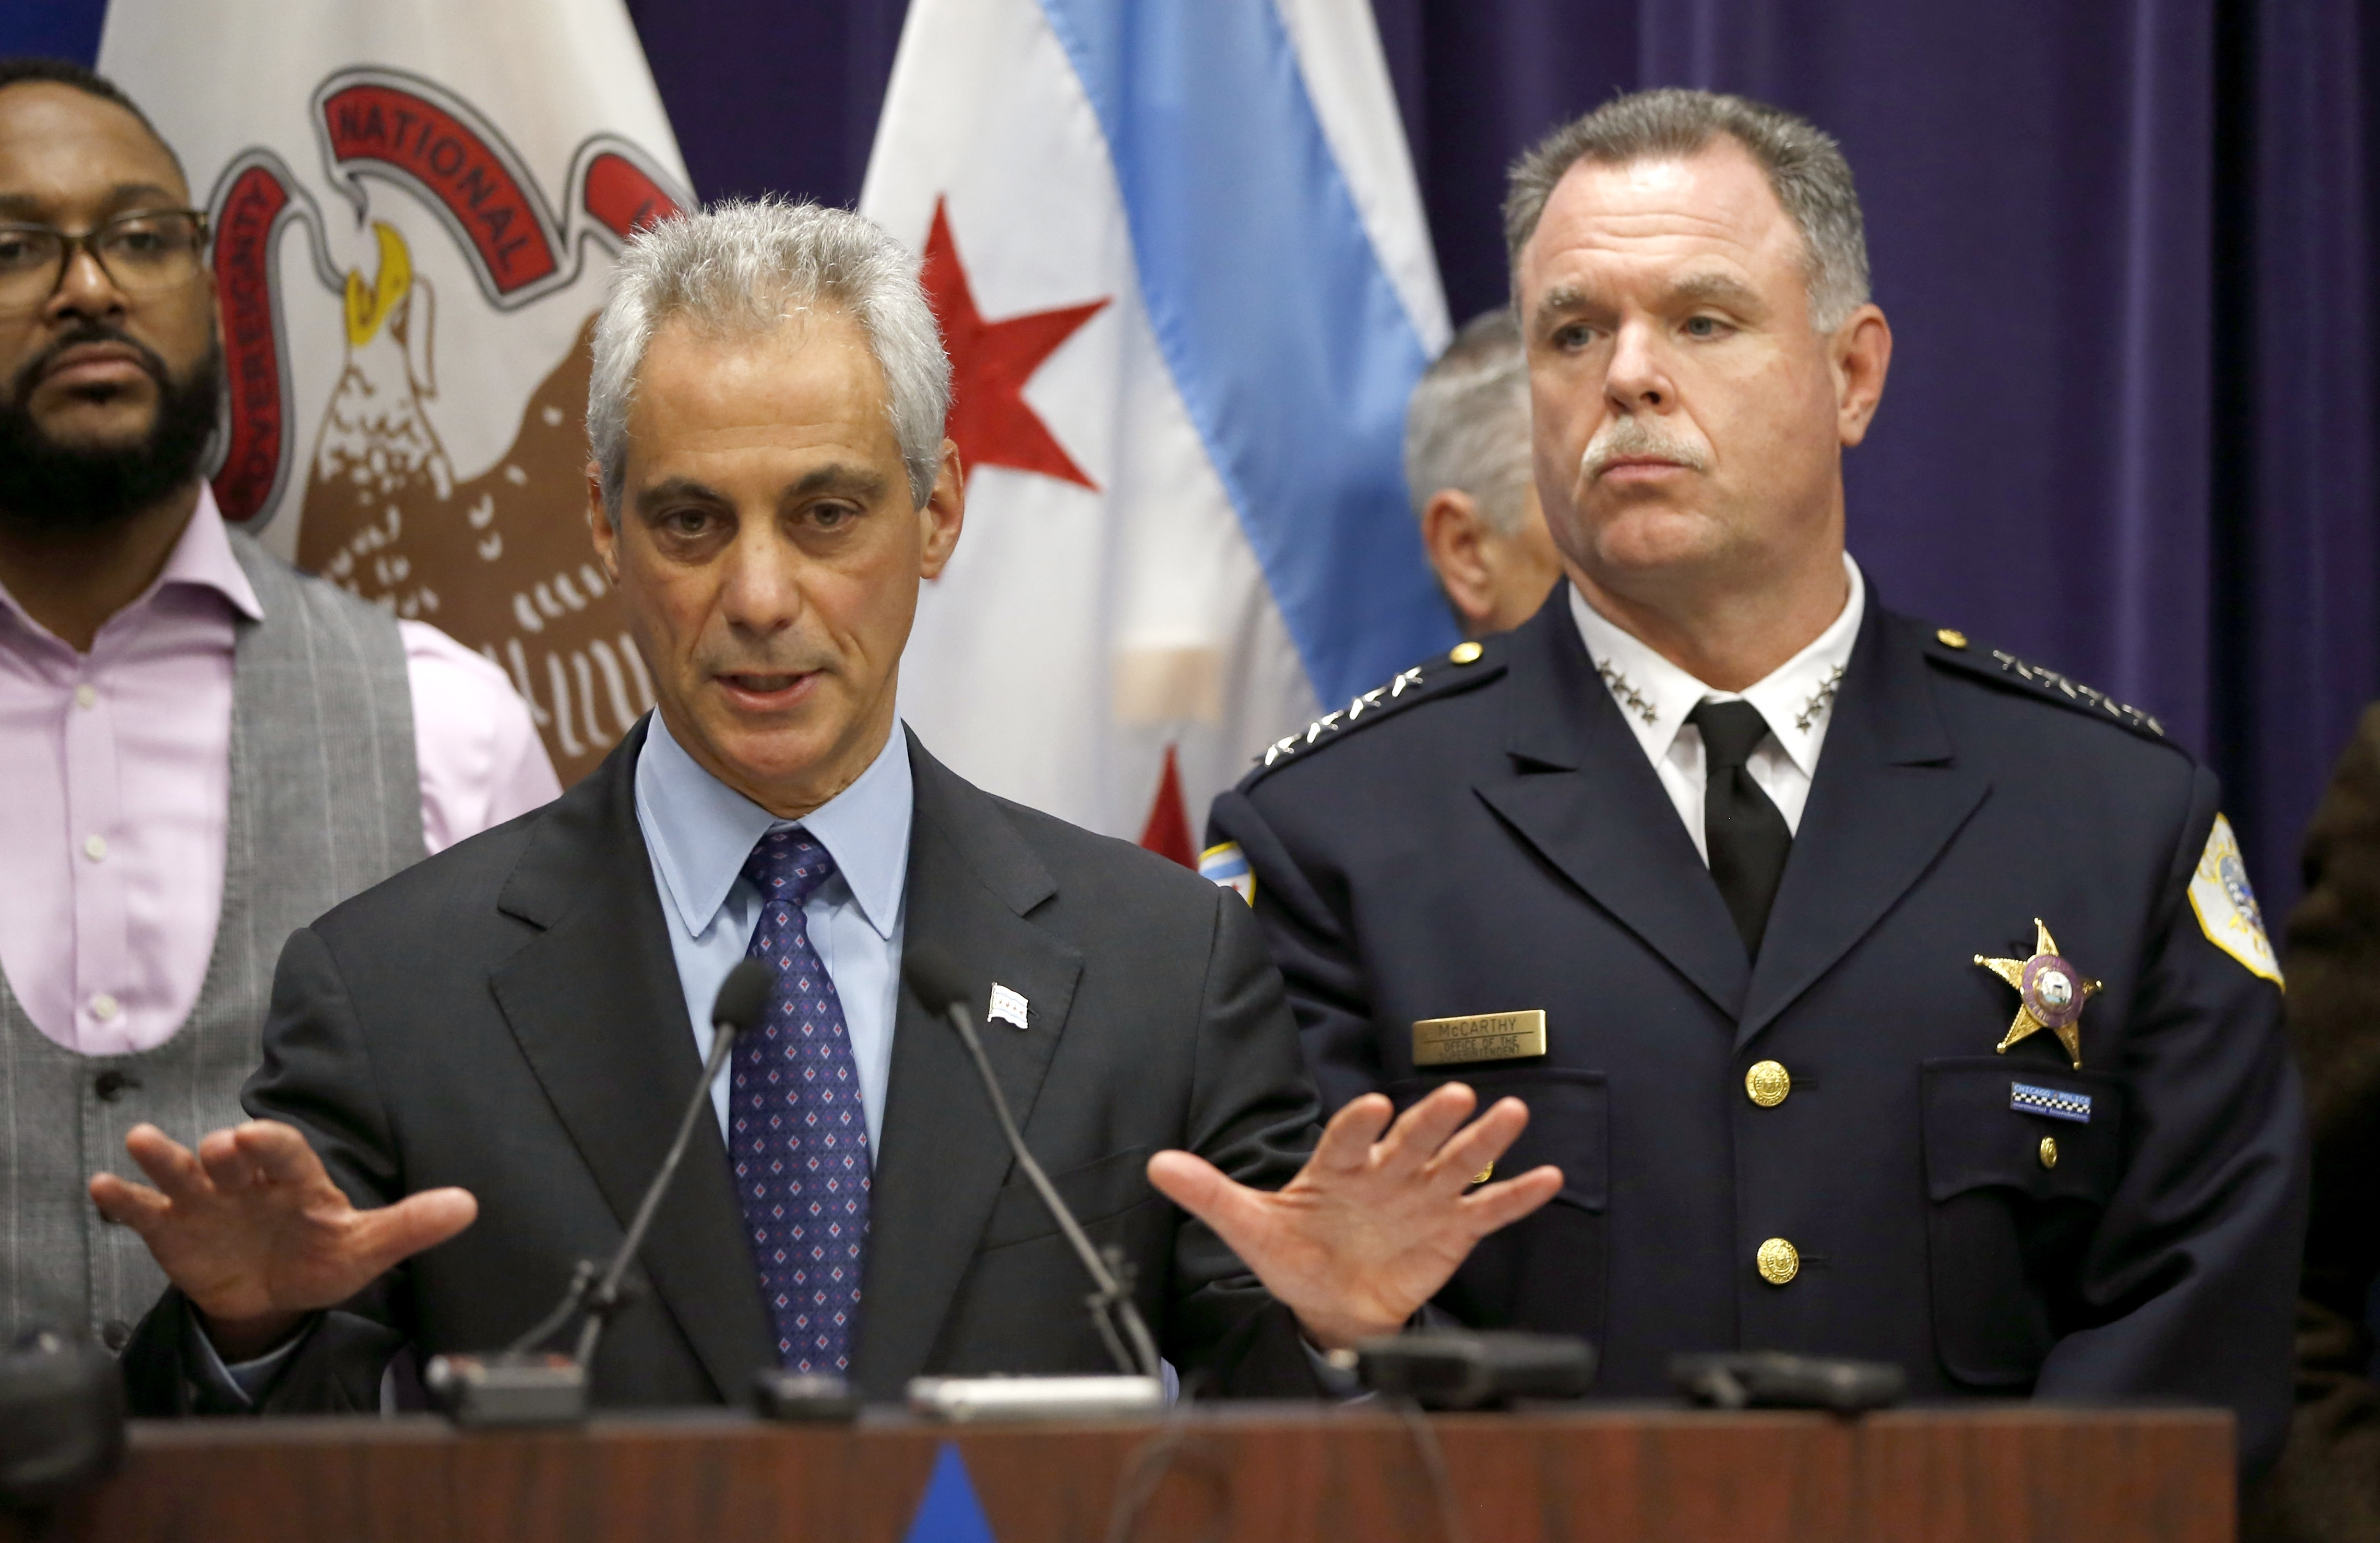 Chicago Mayor Rahm Emanuel and Police Superintendent Garry McCarthy appear at a news conference on Tuesday.